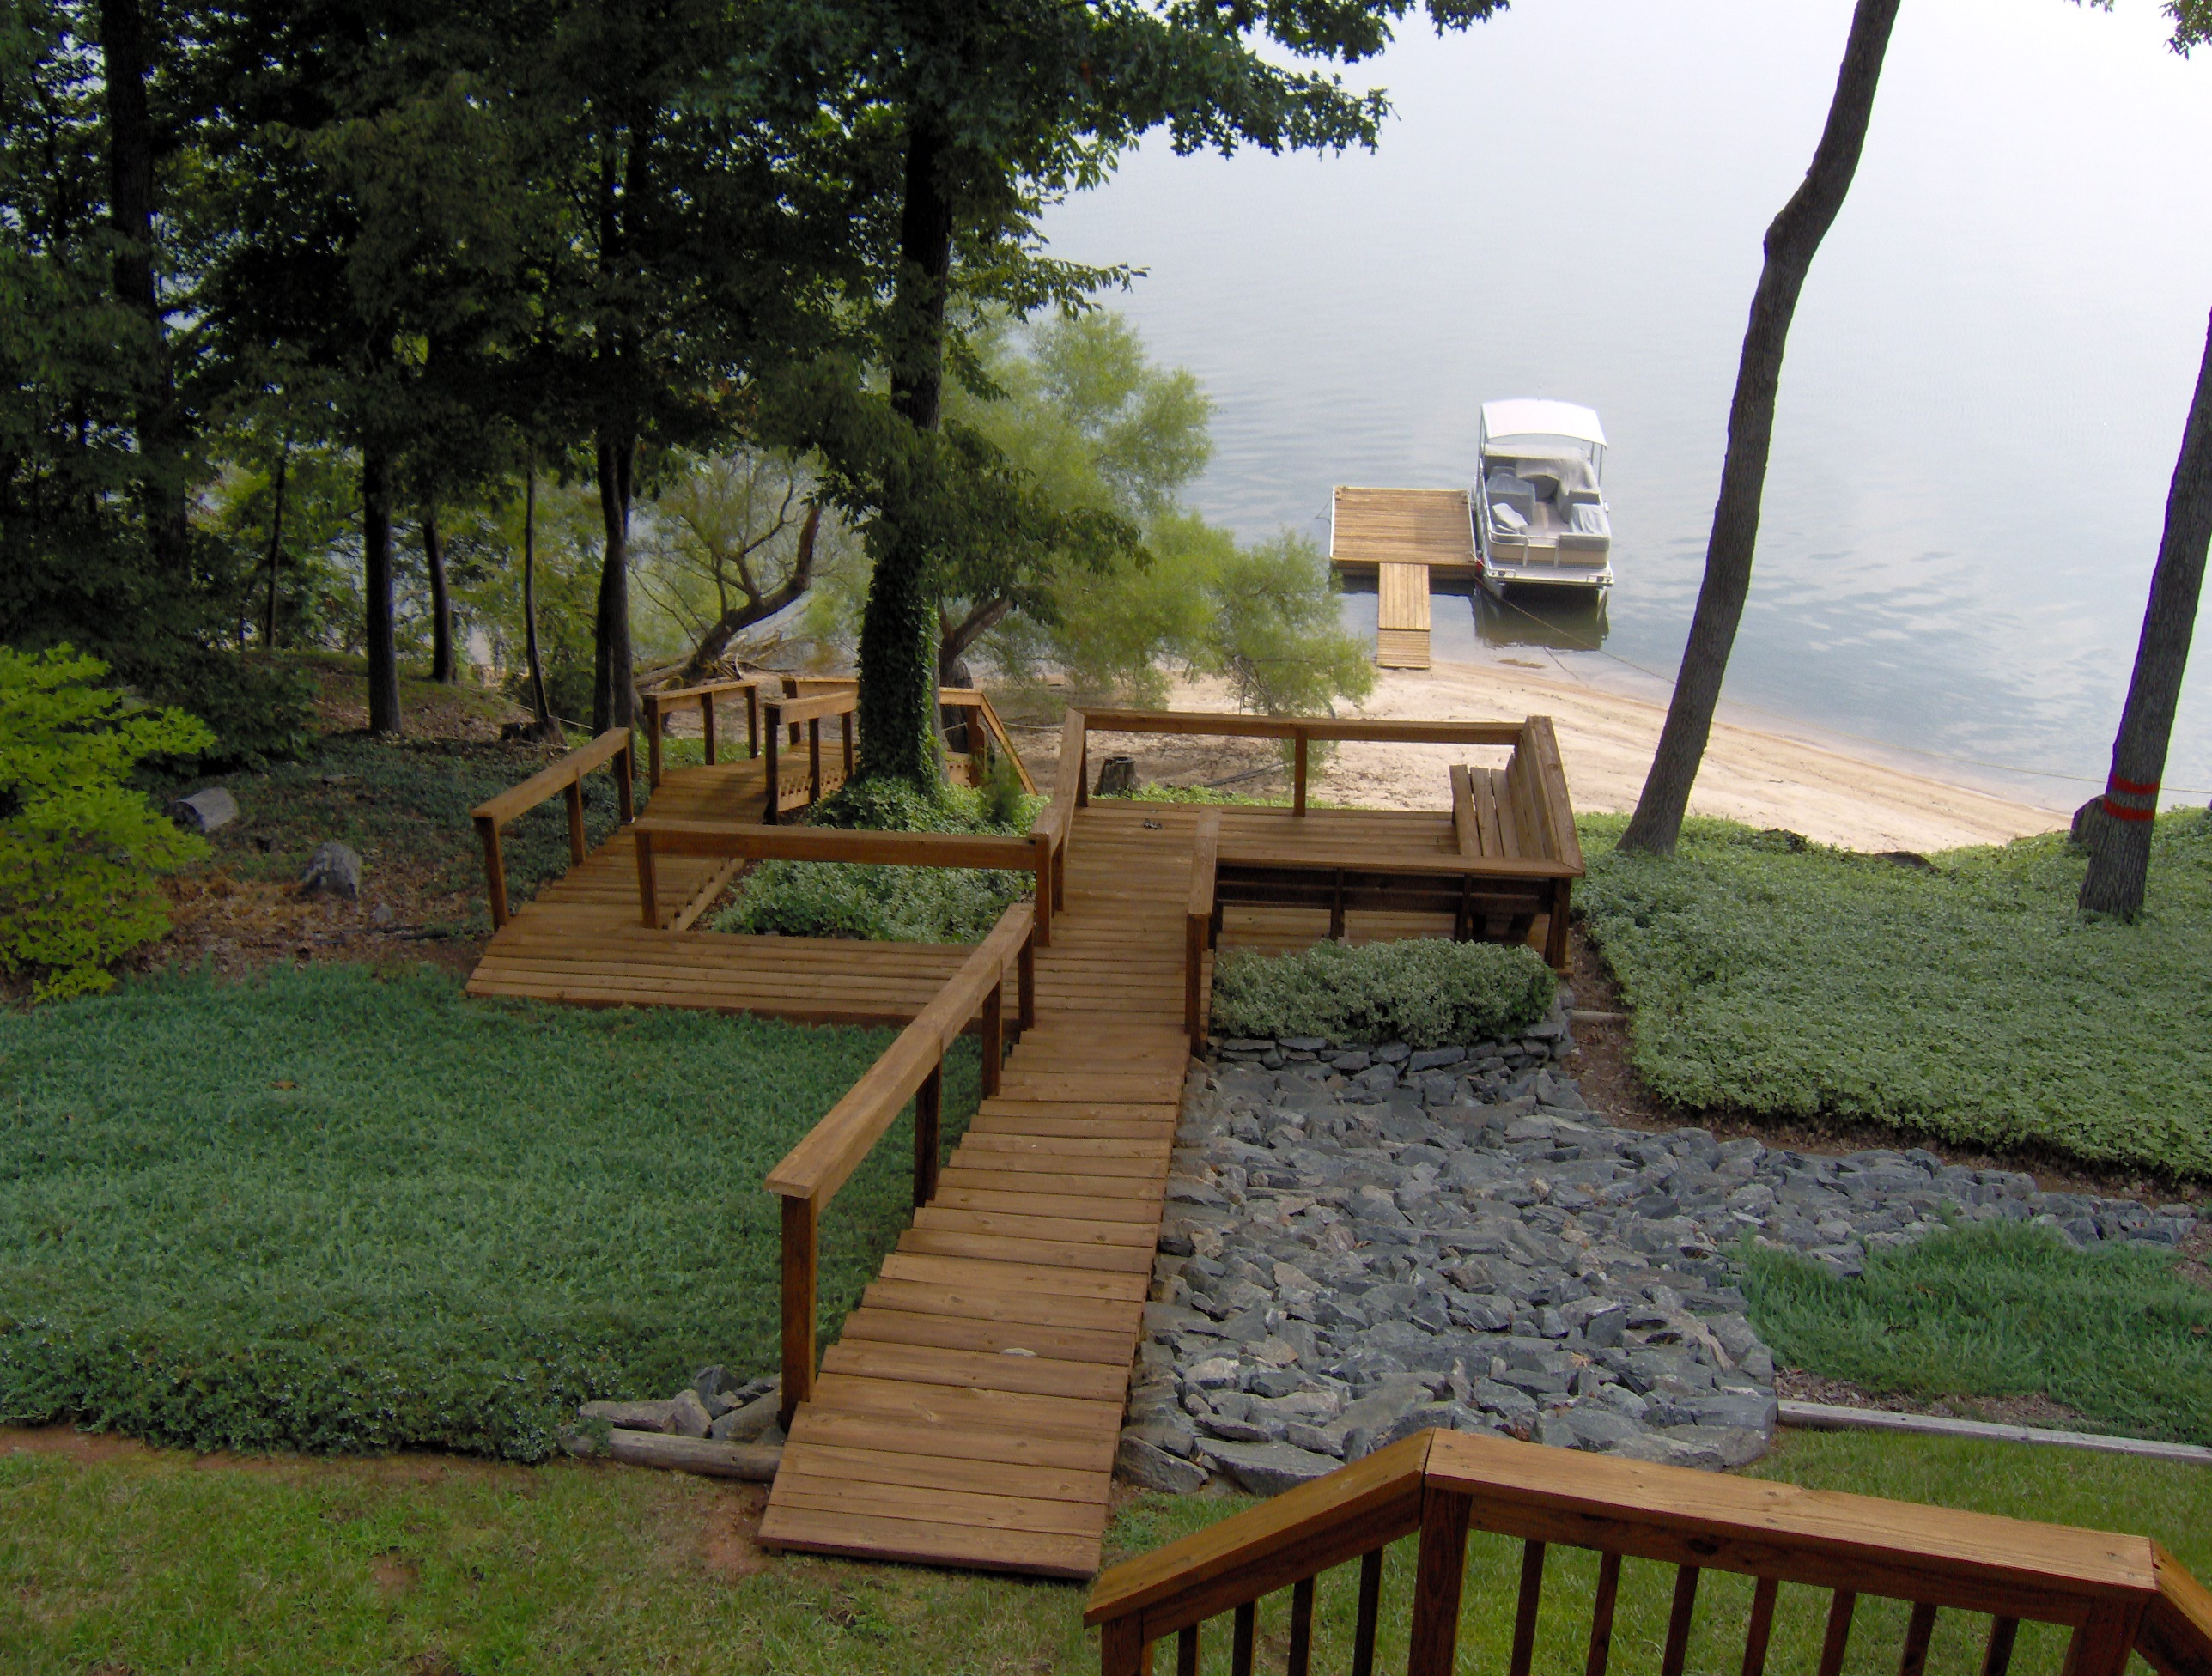 Decks docks renew crew of lake gaston kerr lake and for Patio decks for sale